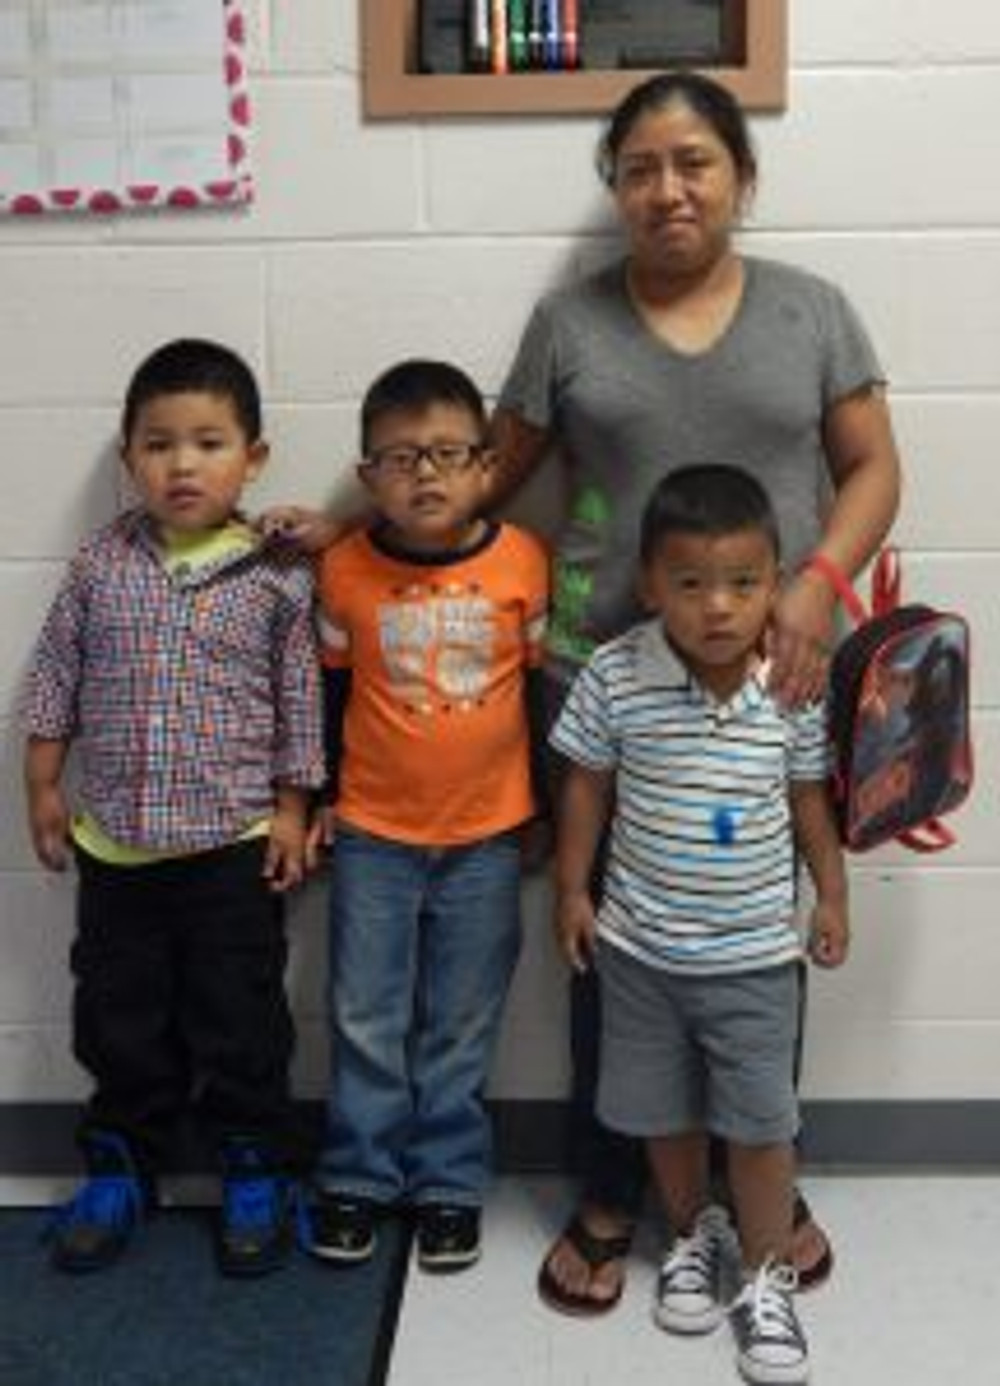 St. Helena's farmworker families drop off their children at the center.